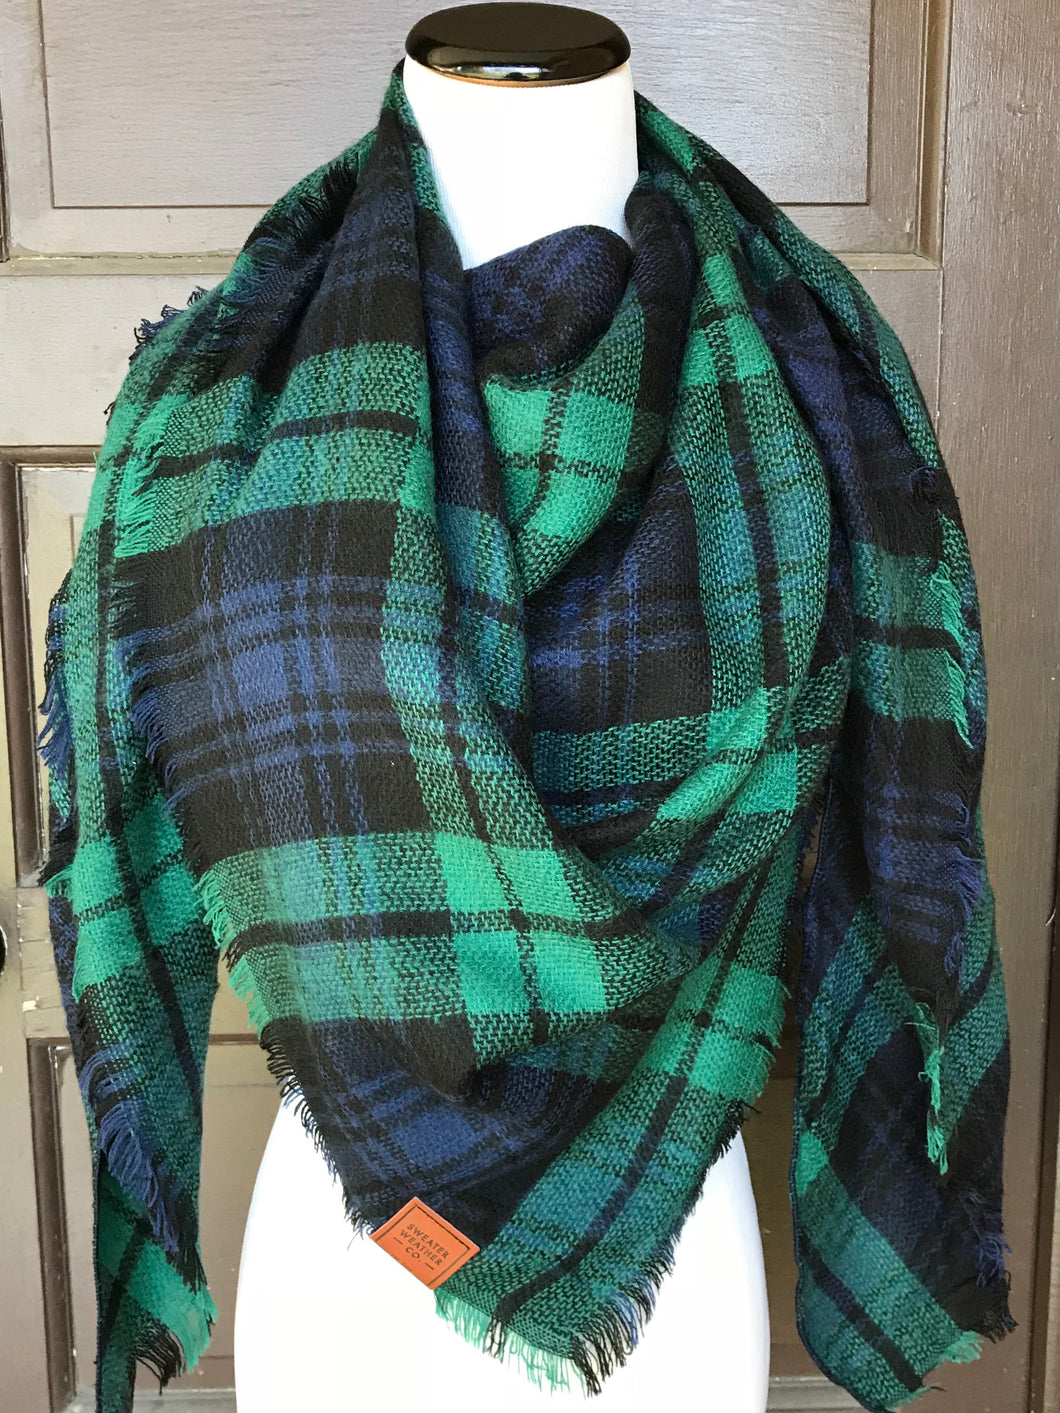 Sweater Weather Co. Blanket Scarf - Navy + Kelly